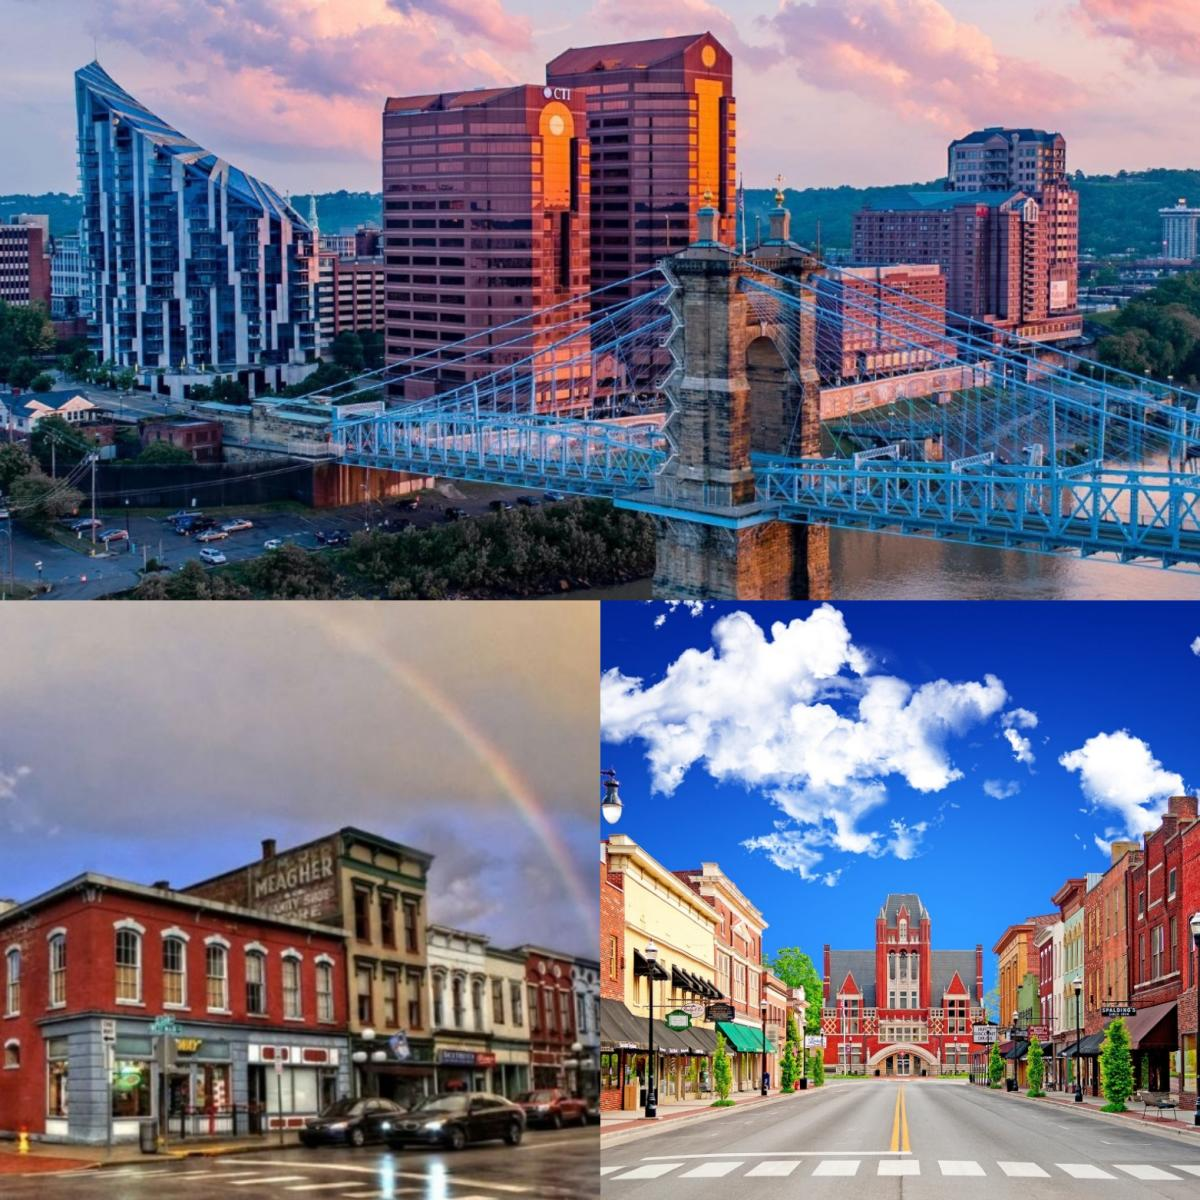 A collage of the downtowns of the three cities on the Come Find Bourbon tour--Covington, Frankfort, and Bardstown, Kentucky